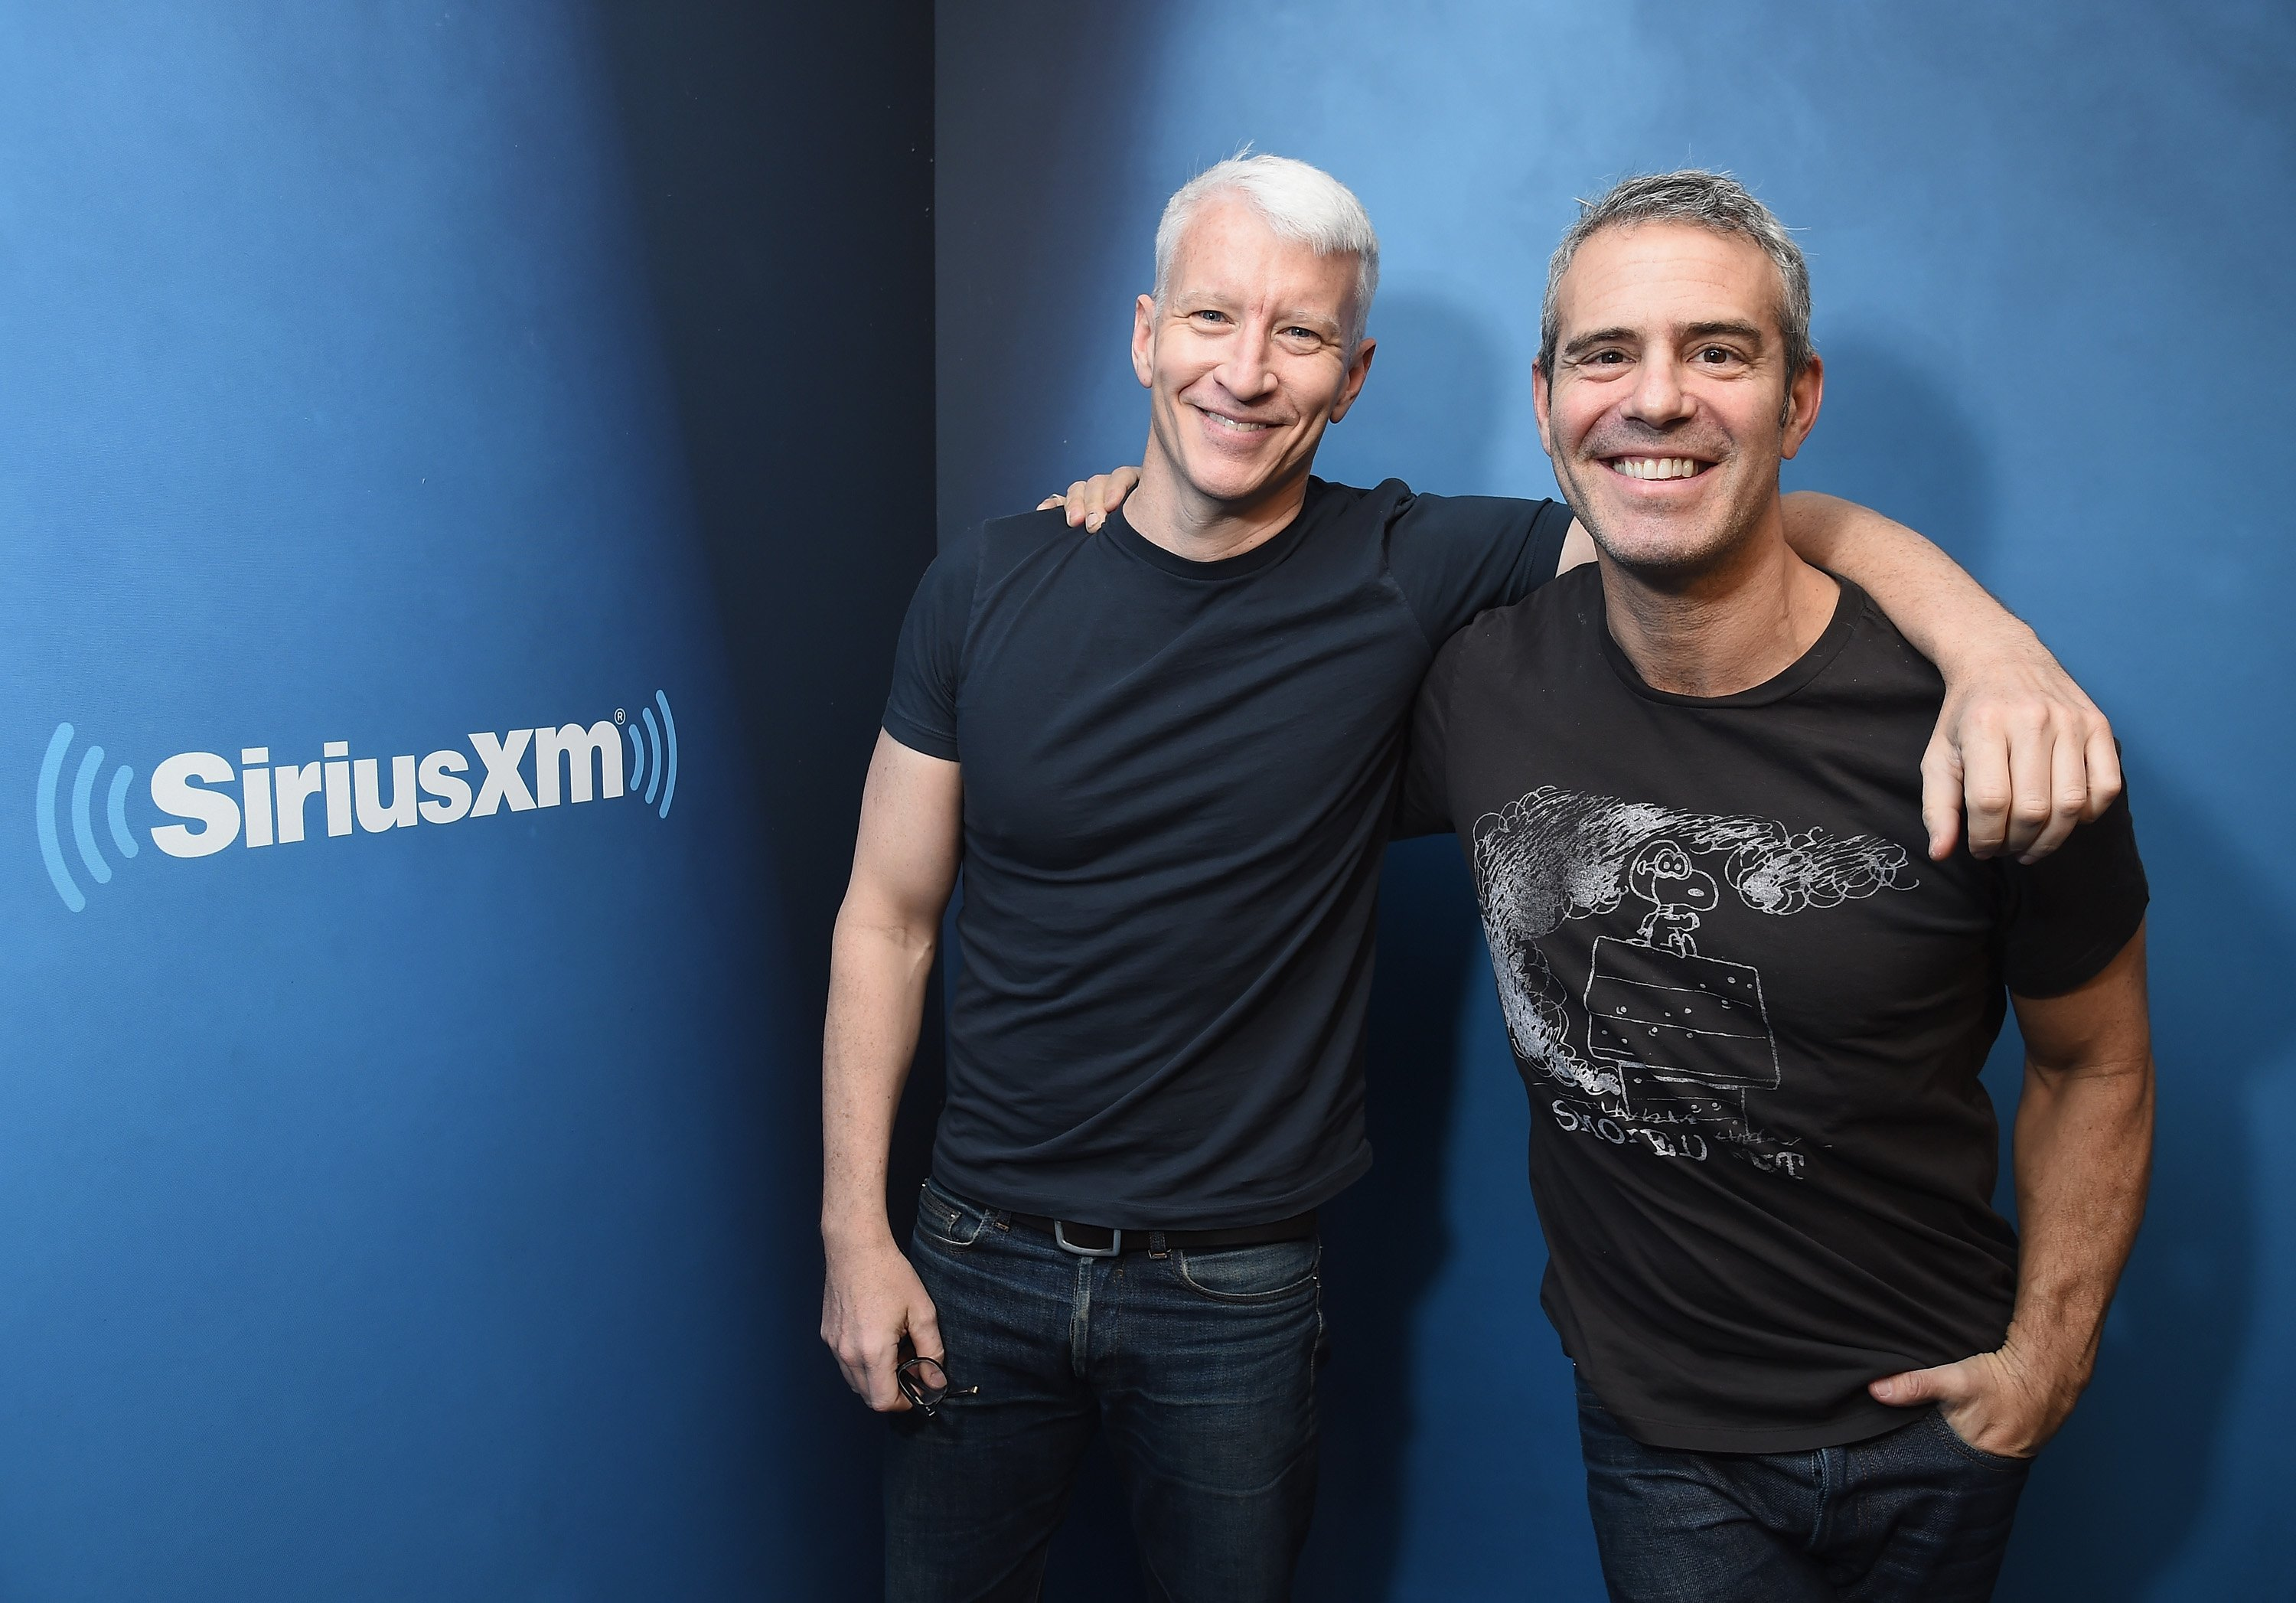 Anderson Cooper and Andy Cohen visit SiriusXM Studios in New York City on January 13, 2017   Photo: Getty Images